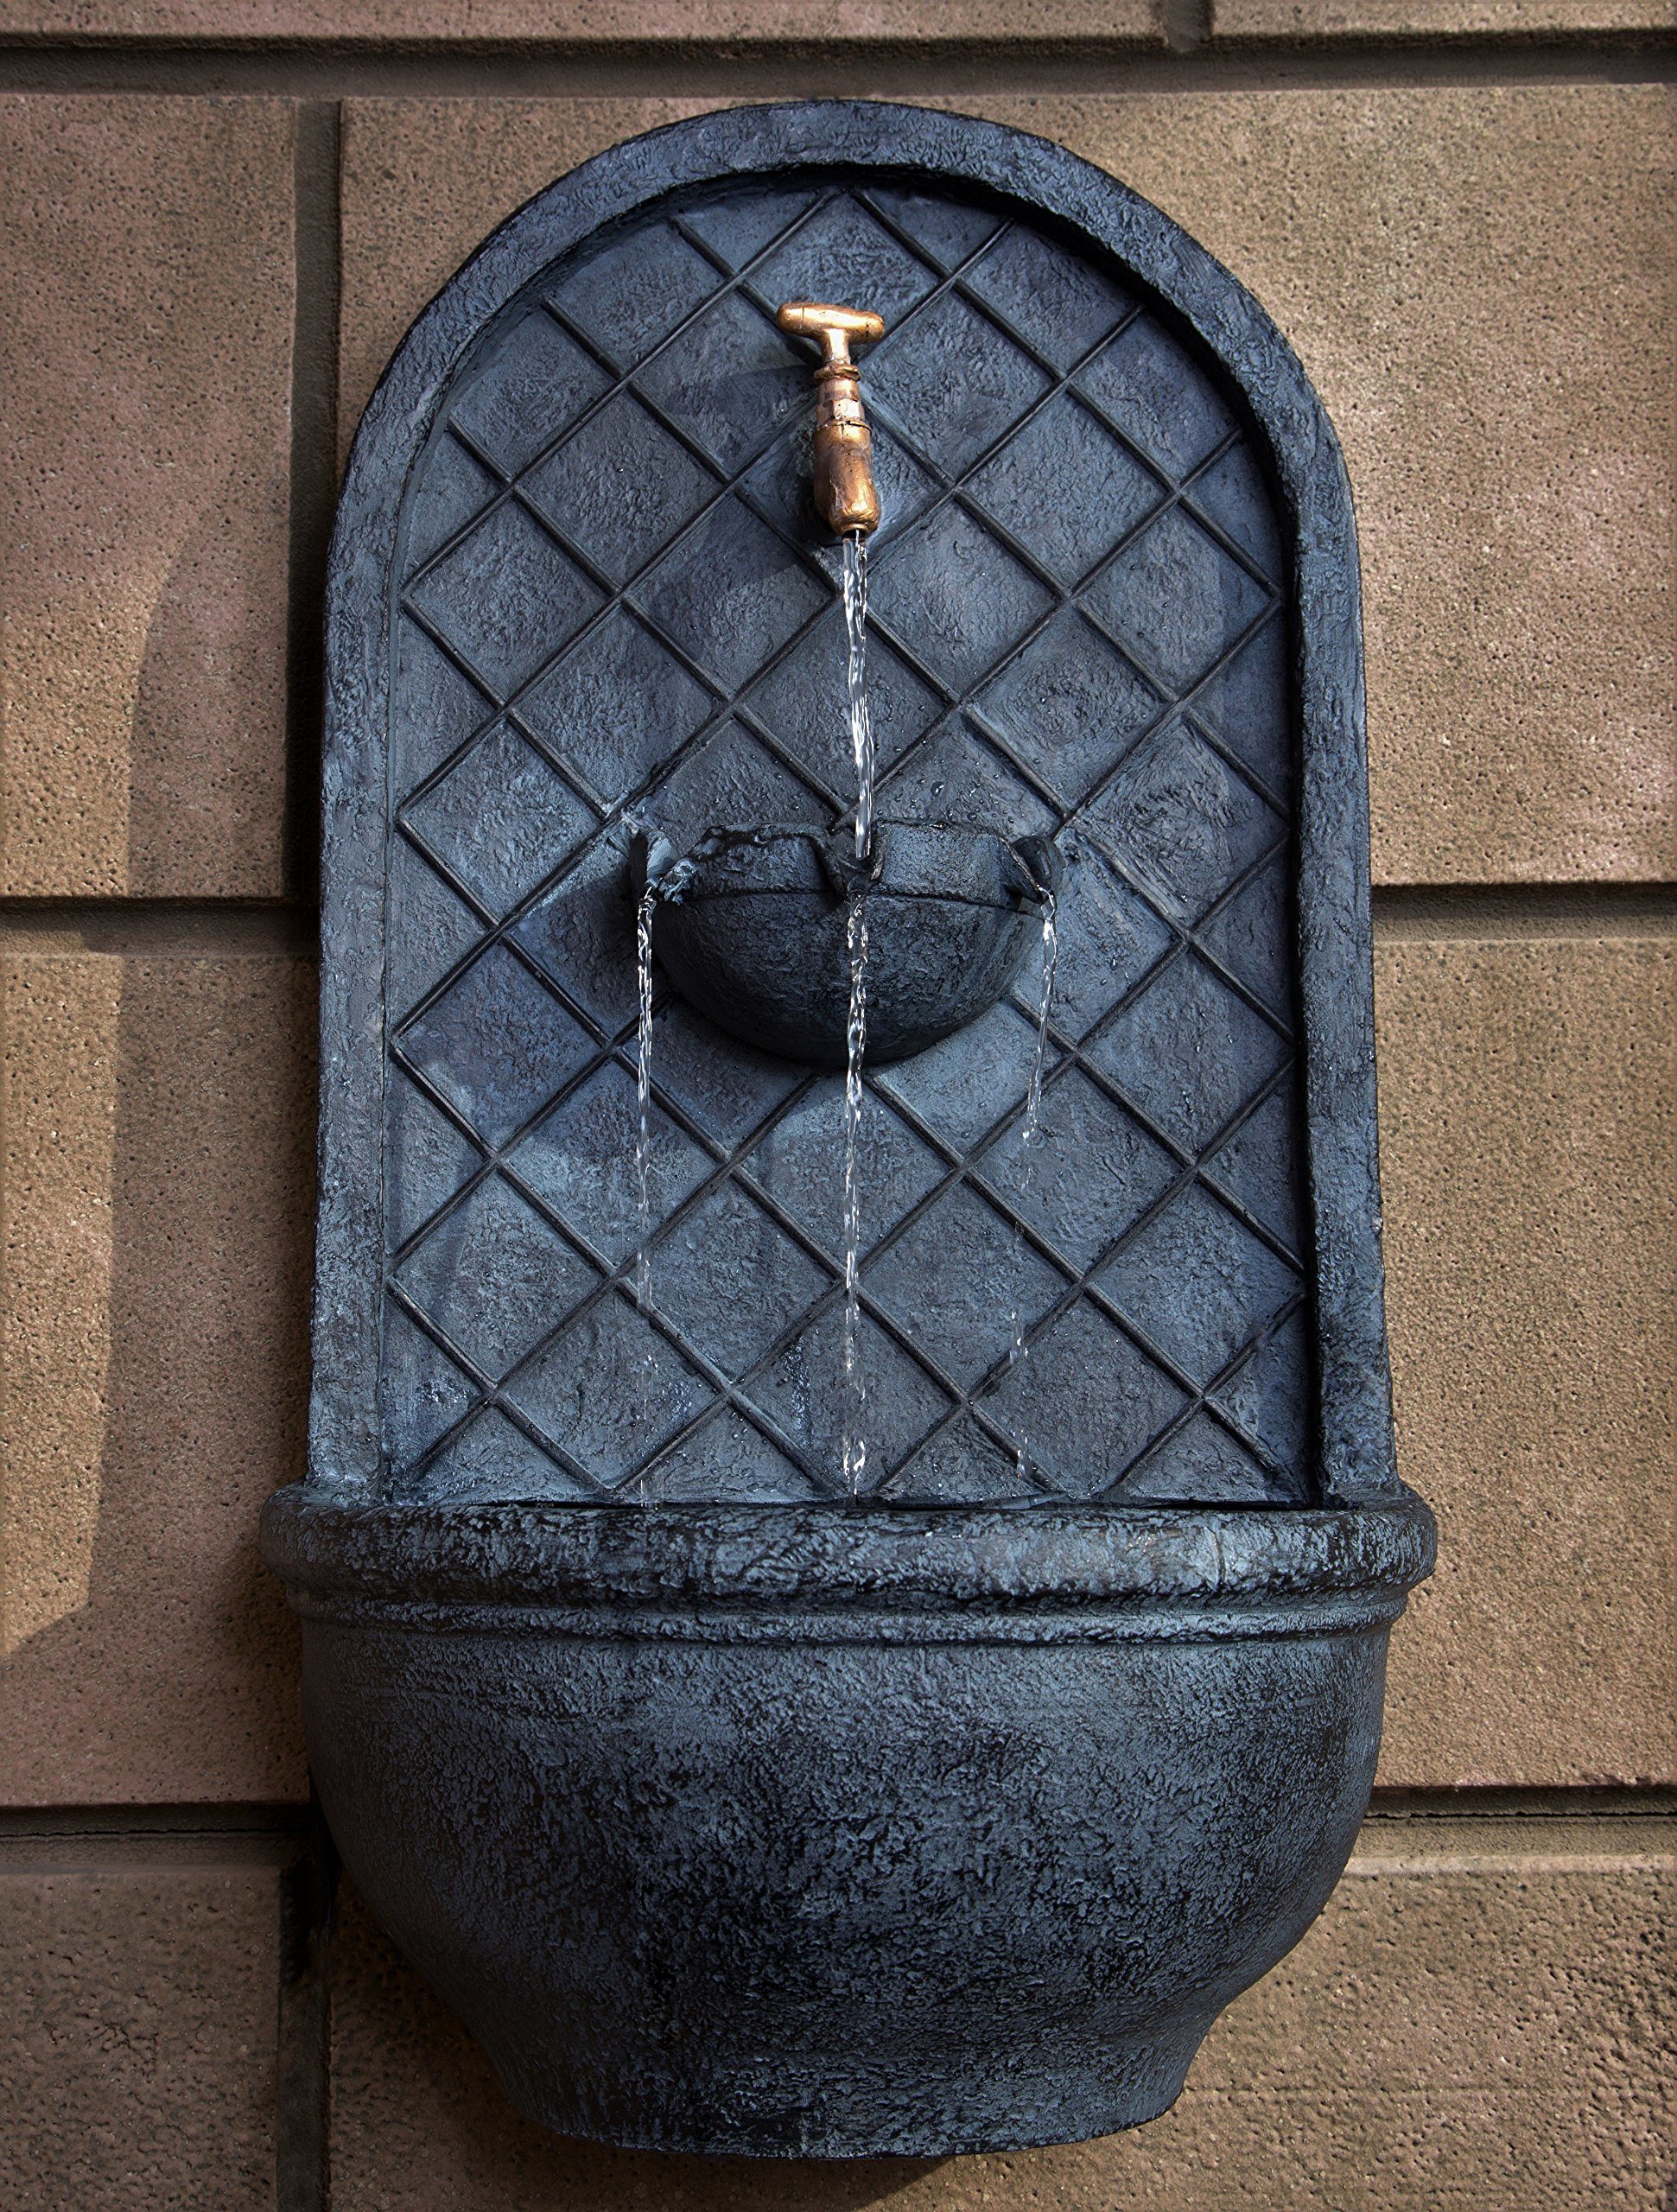 The Milano - Outdoor Wall Fountain - Slate Grey Finish - Water Feature for Garden, Patio and Landscape Enhancement by Harmony Fountains